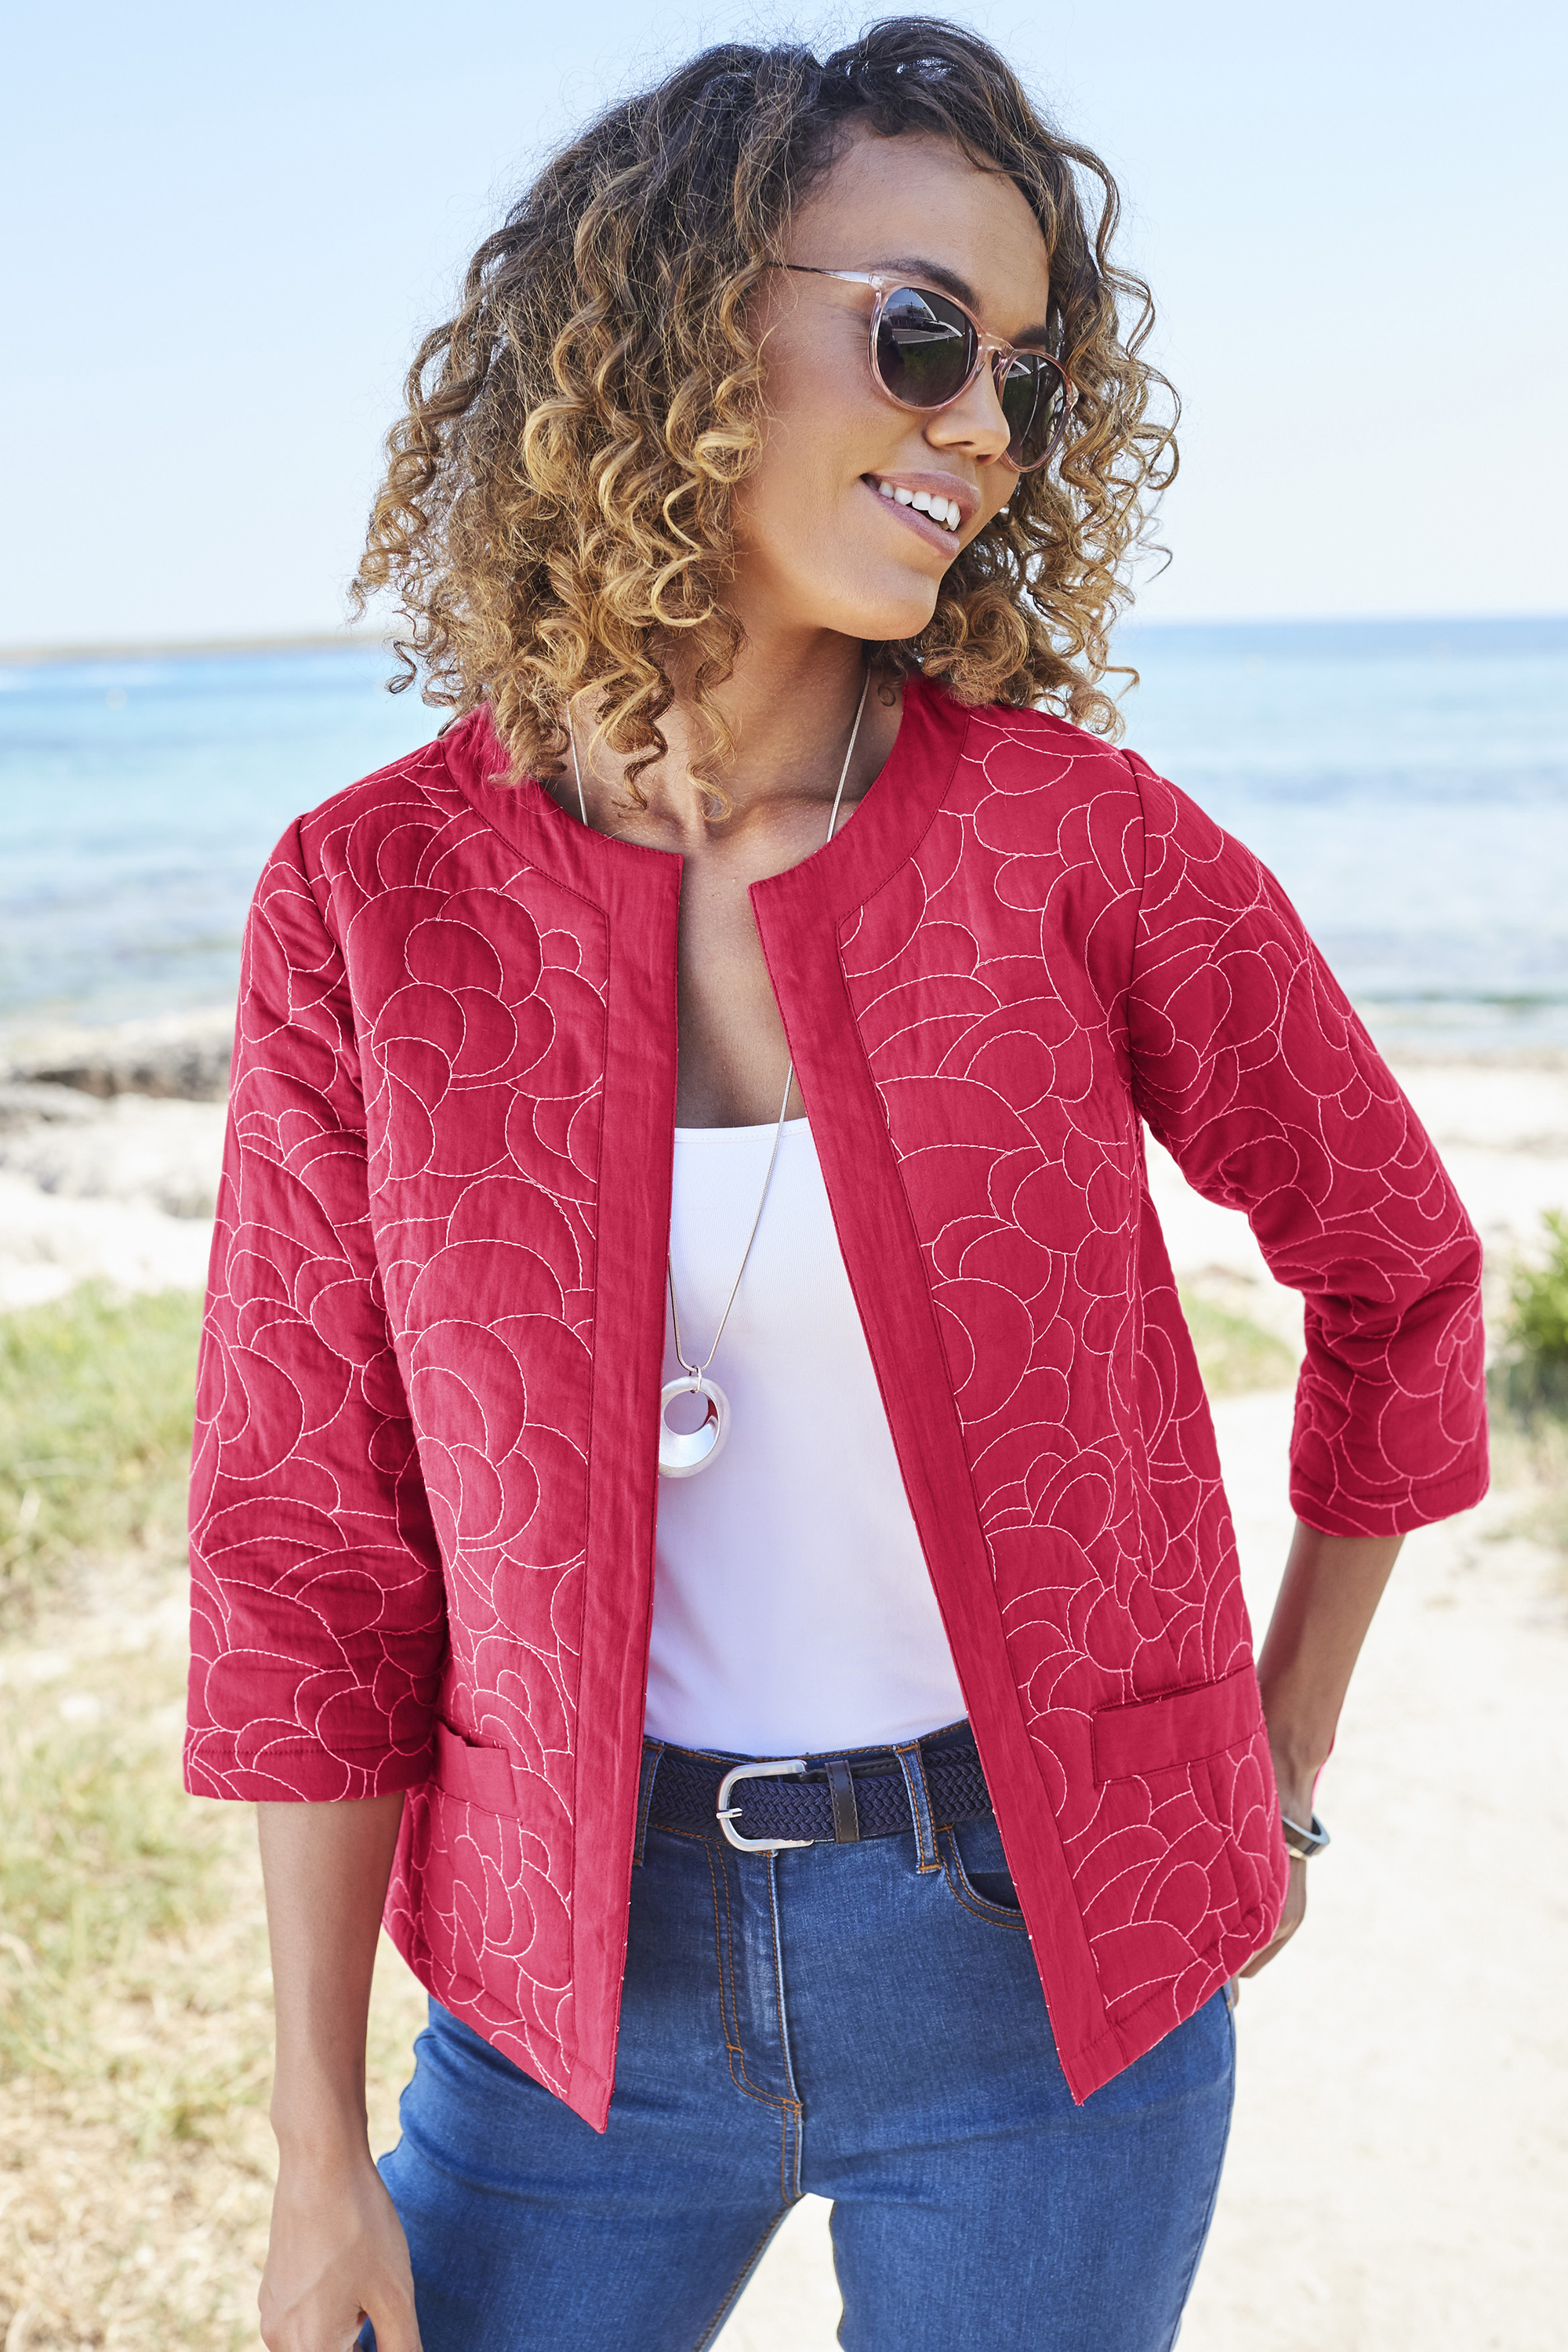 Cotton Traders Red Coral Embroidered Quilted Jacket; Women's Stretch Jeans